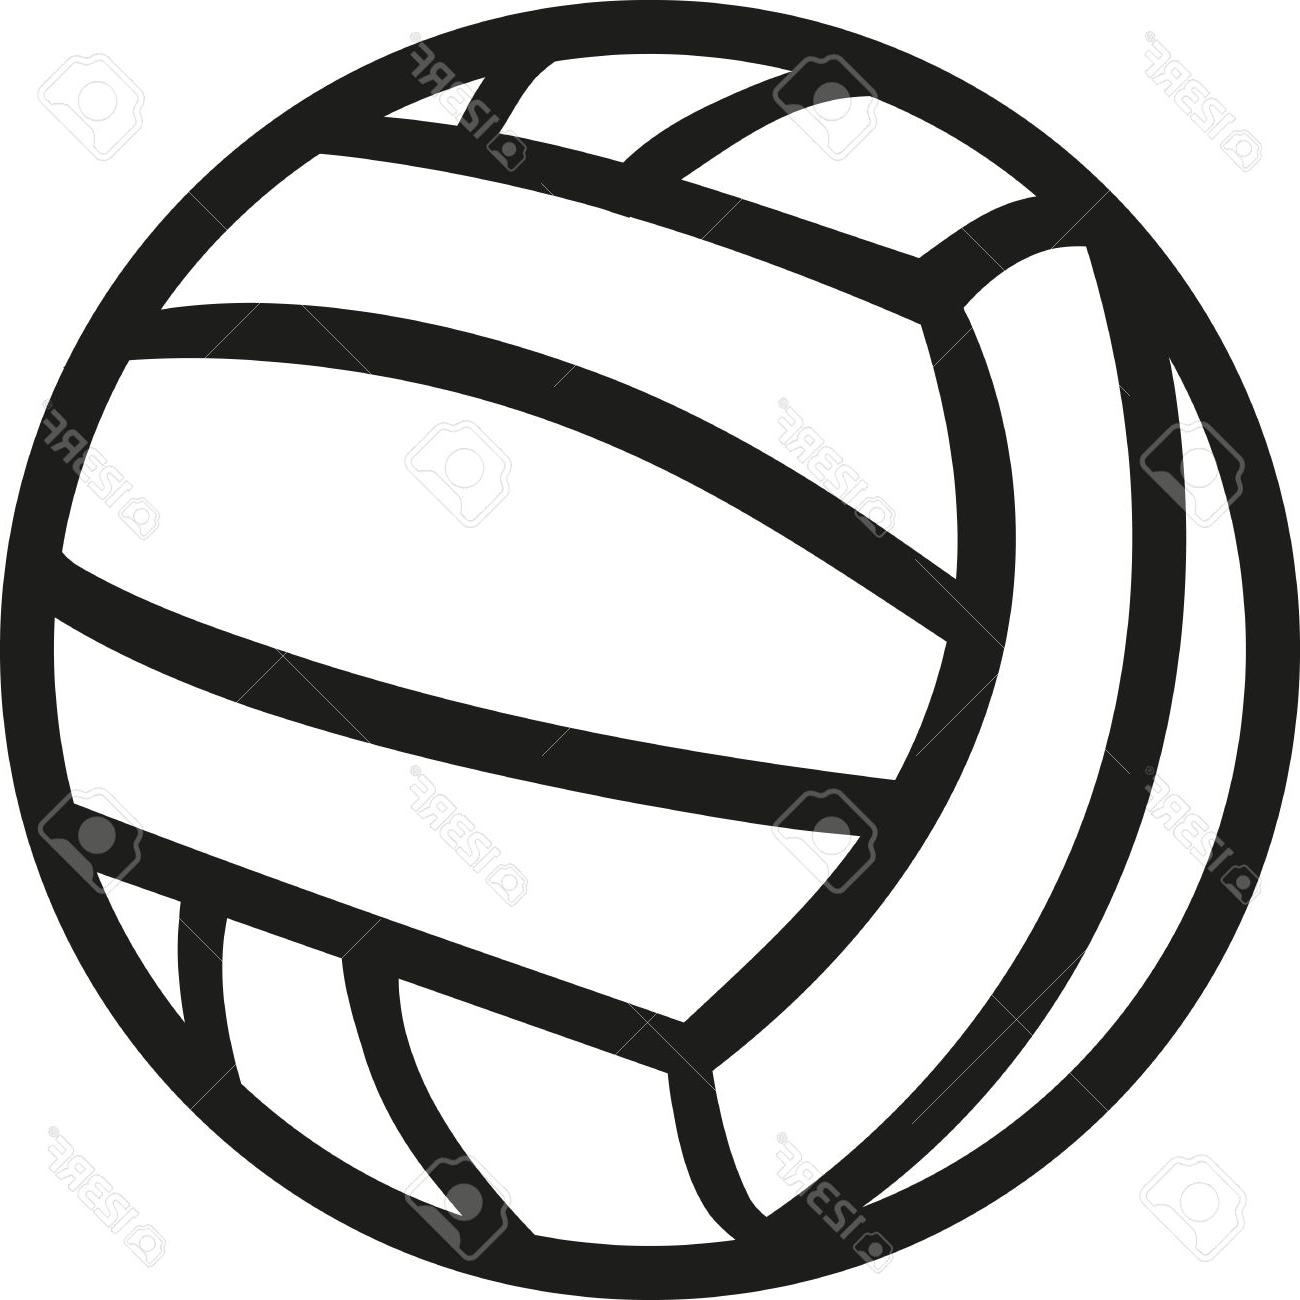 water polo ball drawing at getdrawings com free for personal use rh getdrawings com